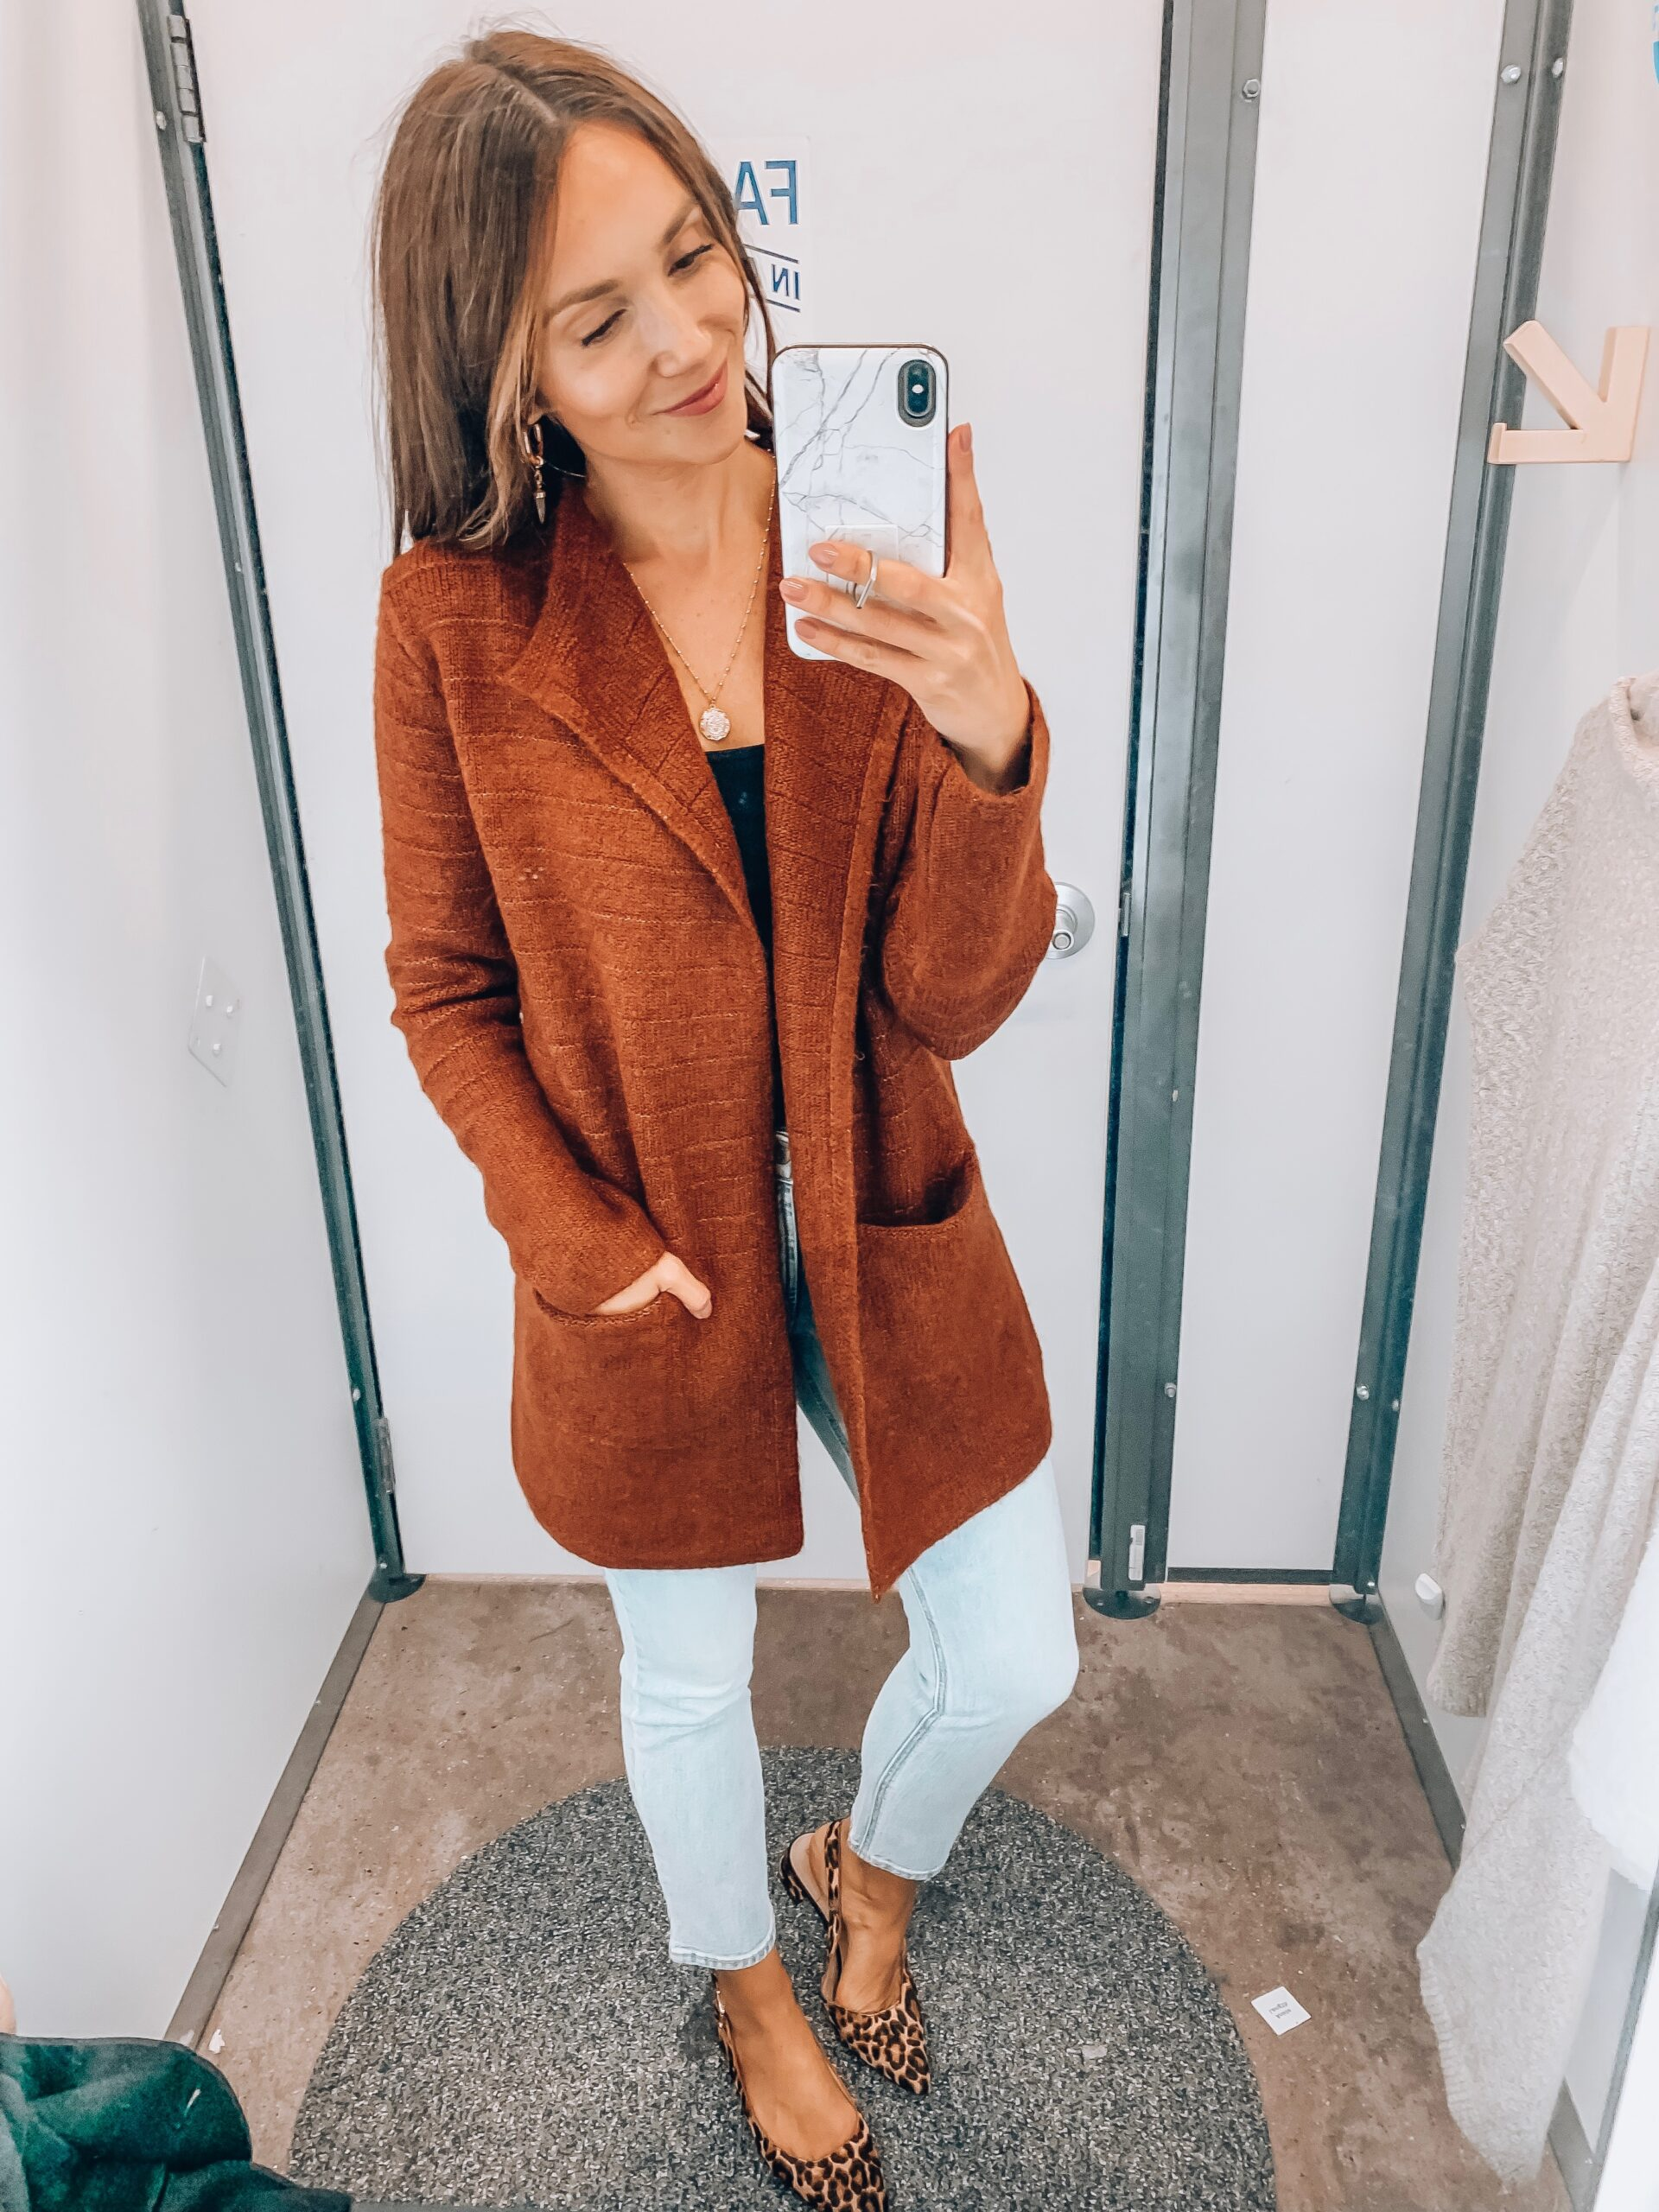 Cardigan, jeans, old navy